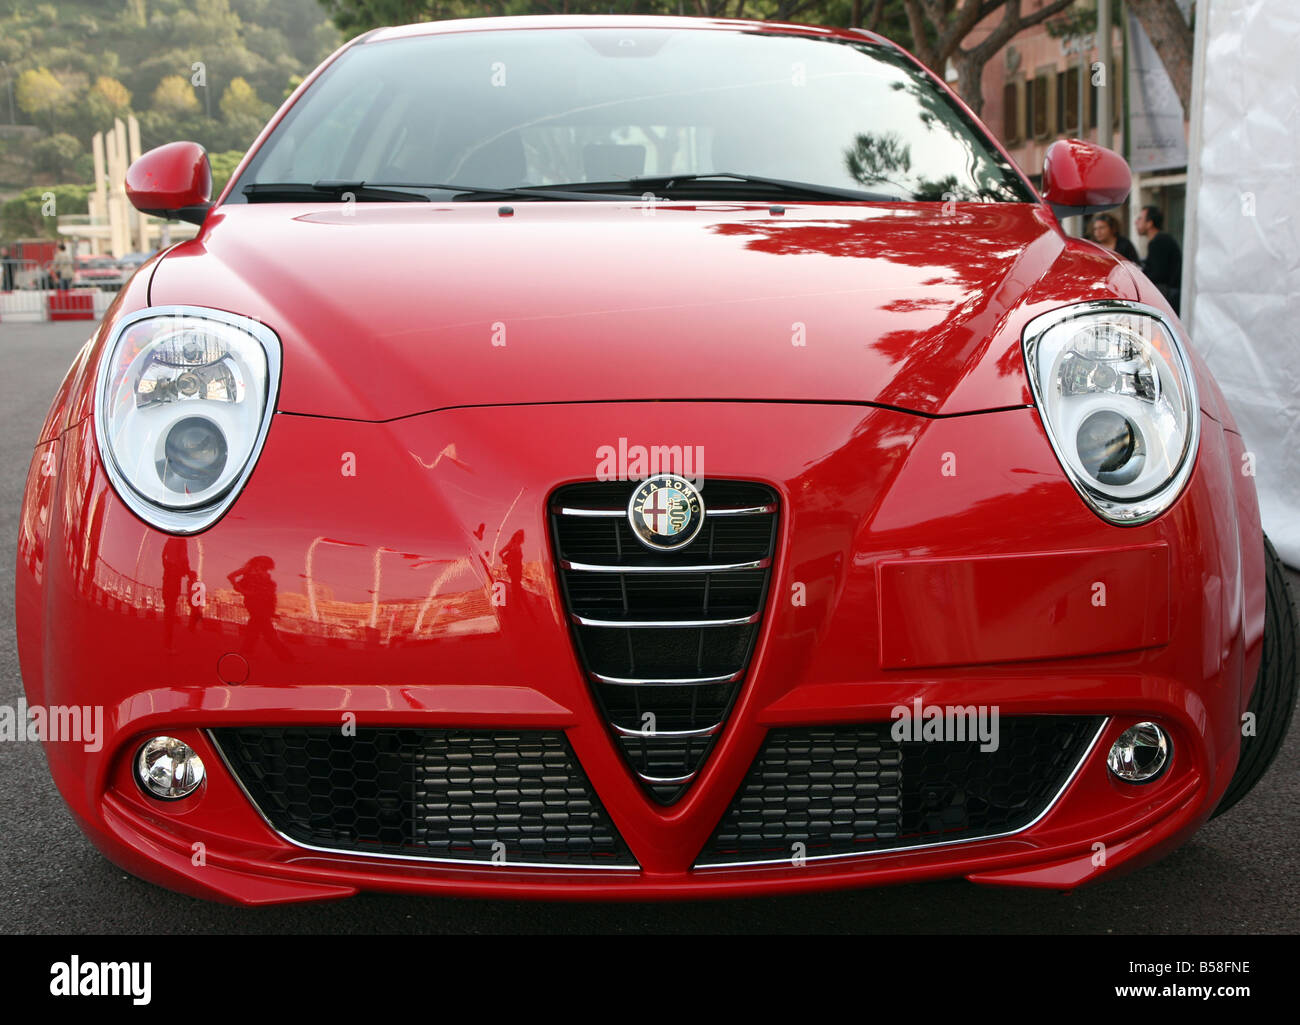 Alfa Romeo Mito Stock Photo Alamy